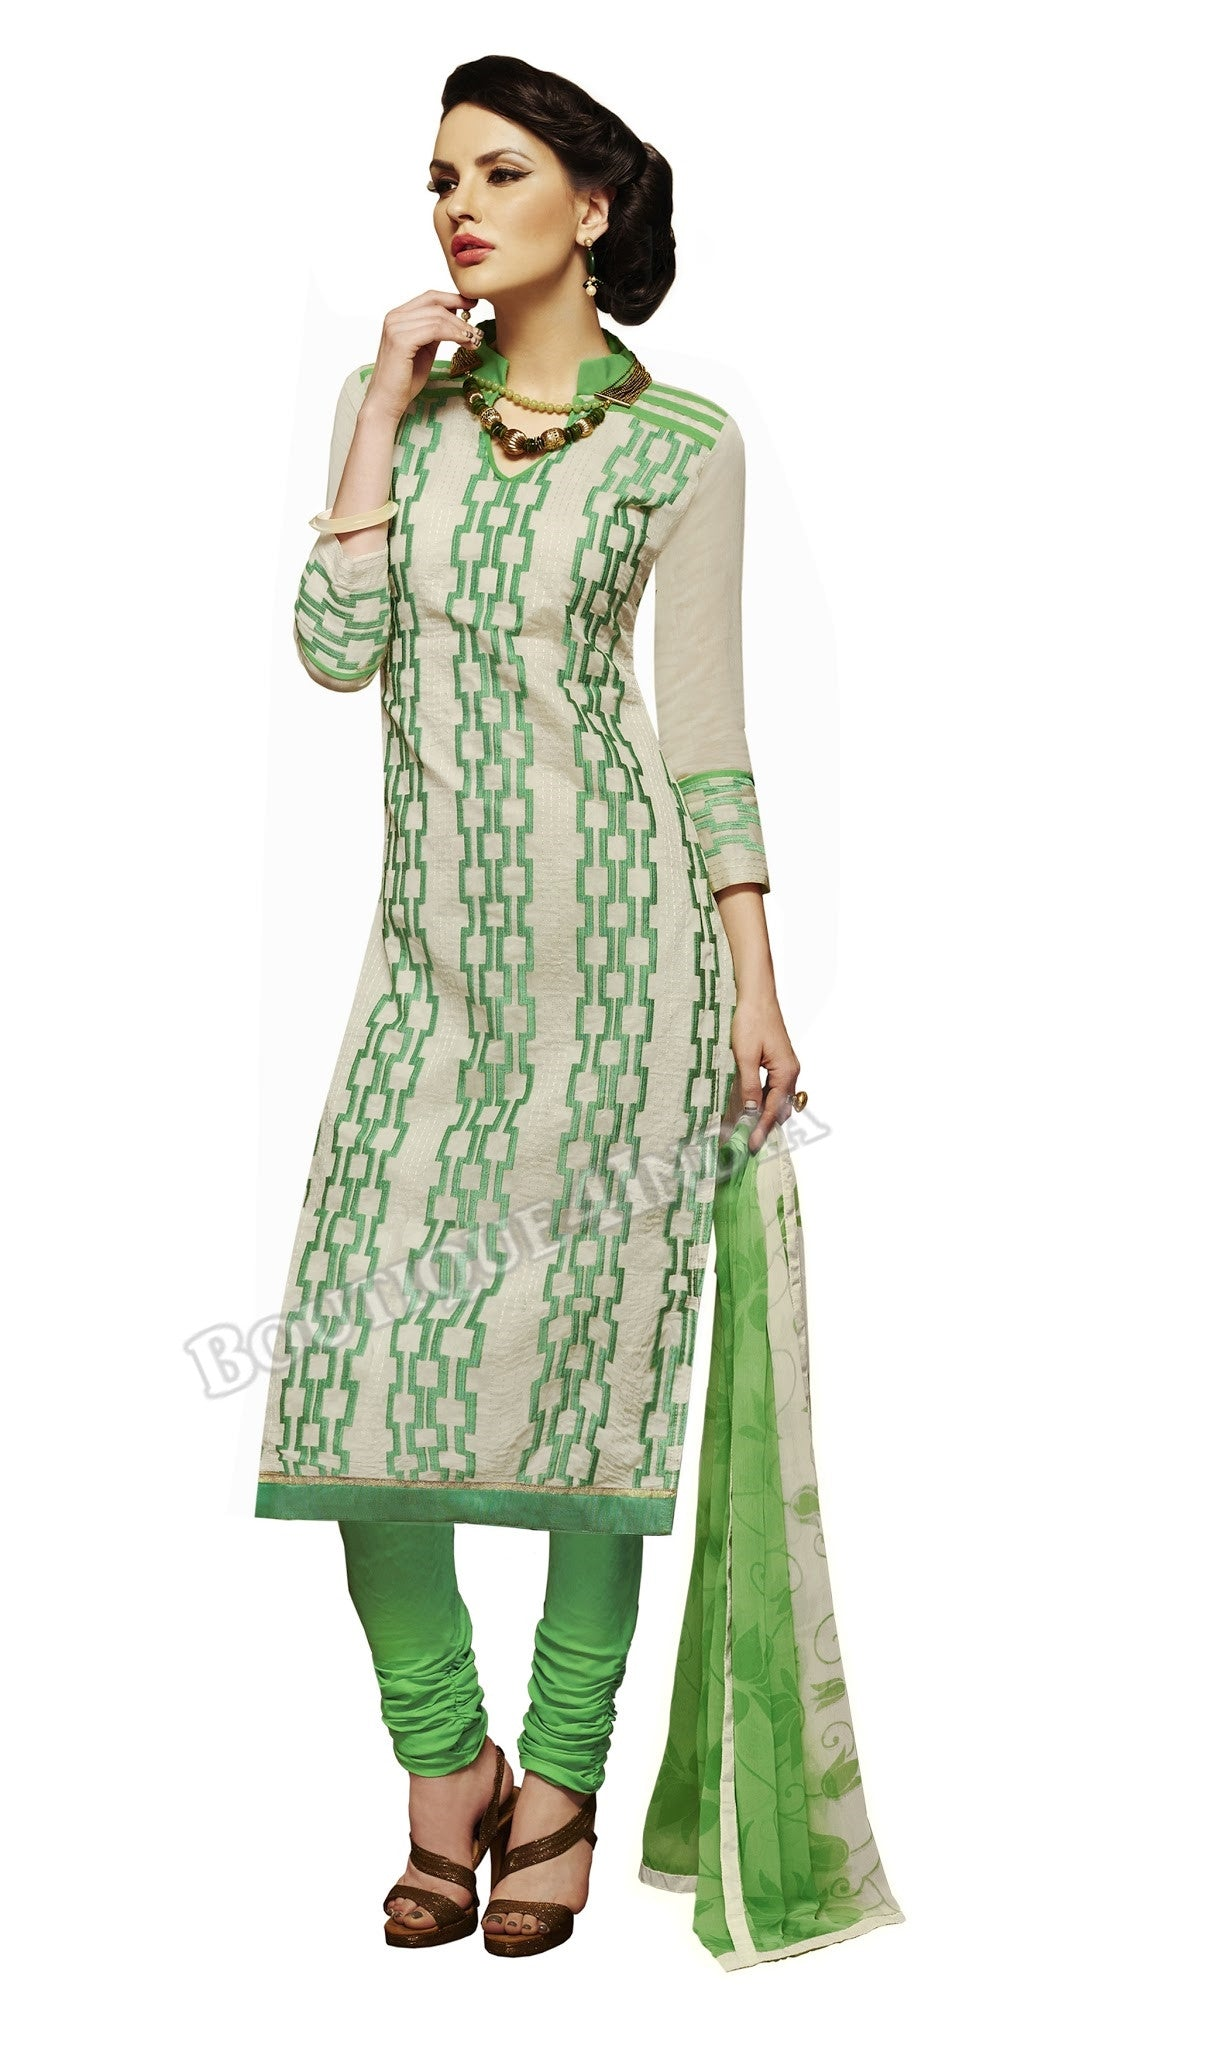 Off white and green Color Chanderi Embroidered Straight Cut Salwar Suit